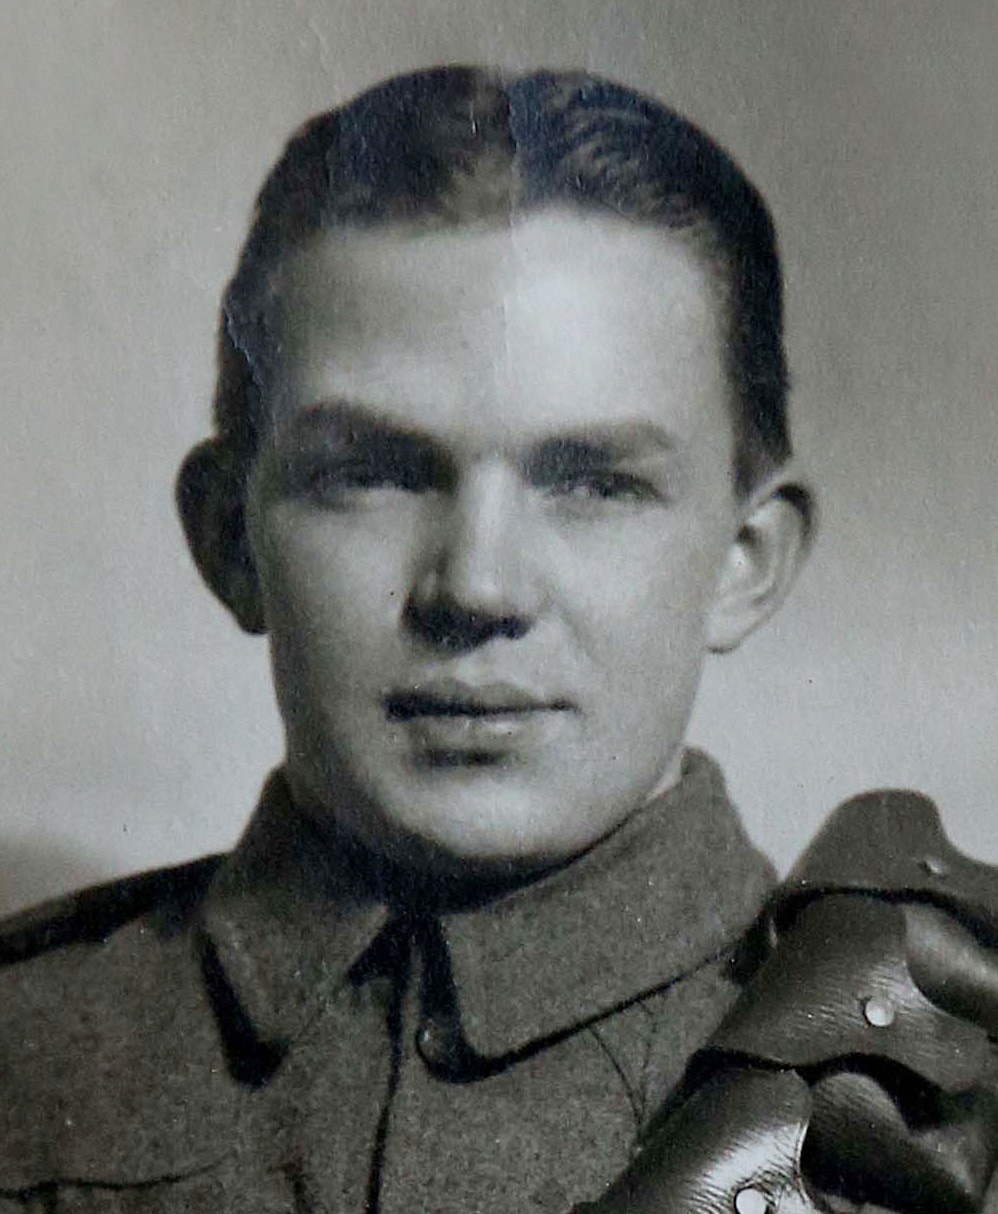 Diary of Gunner George James: Over the top and into battle - 3110880